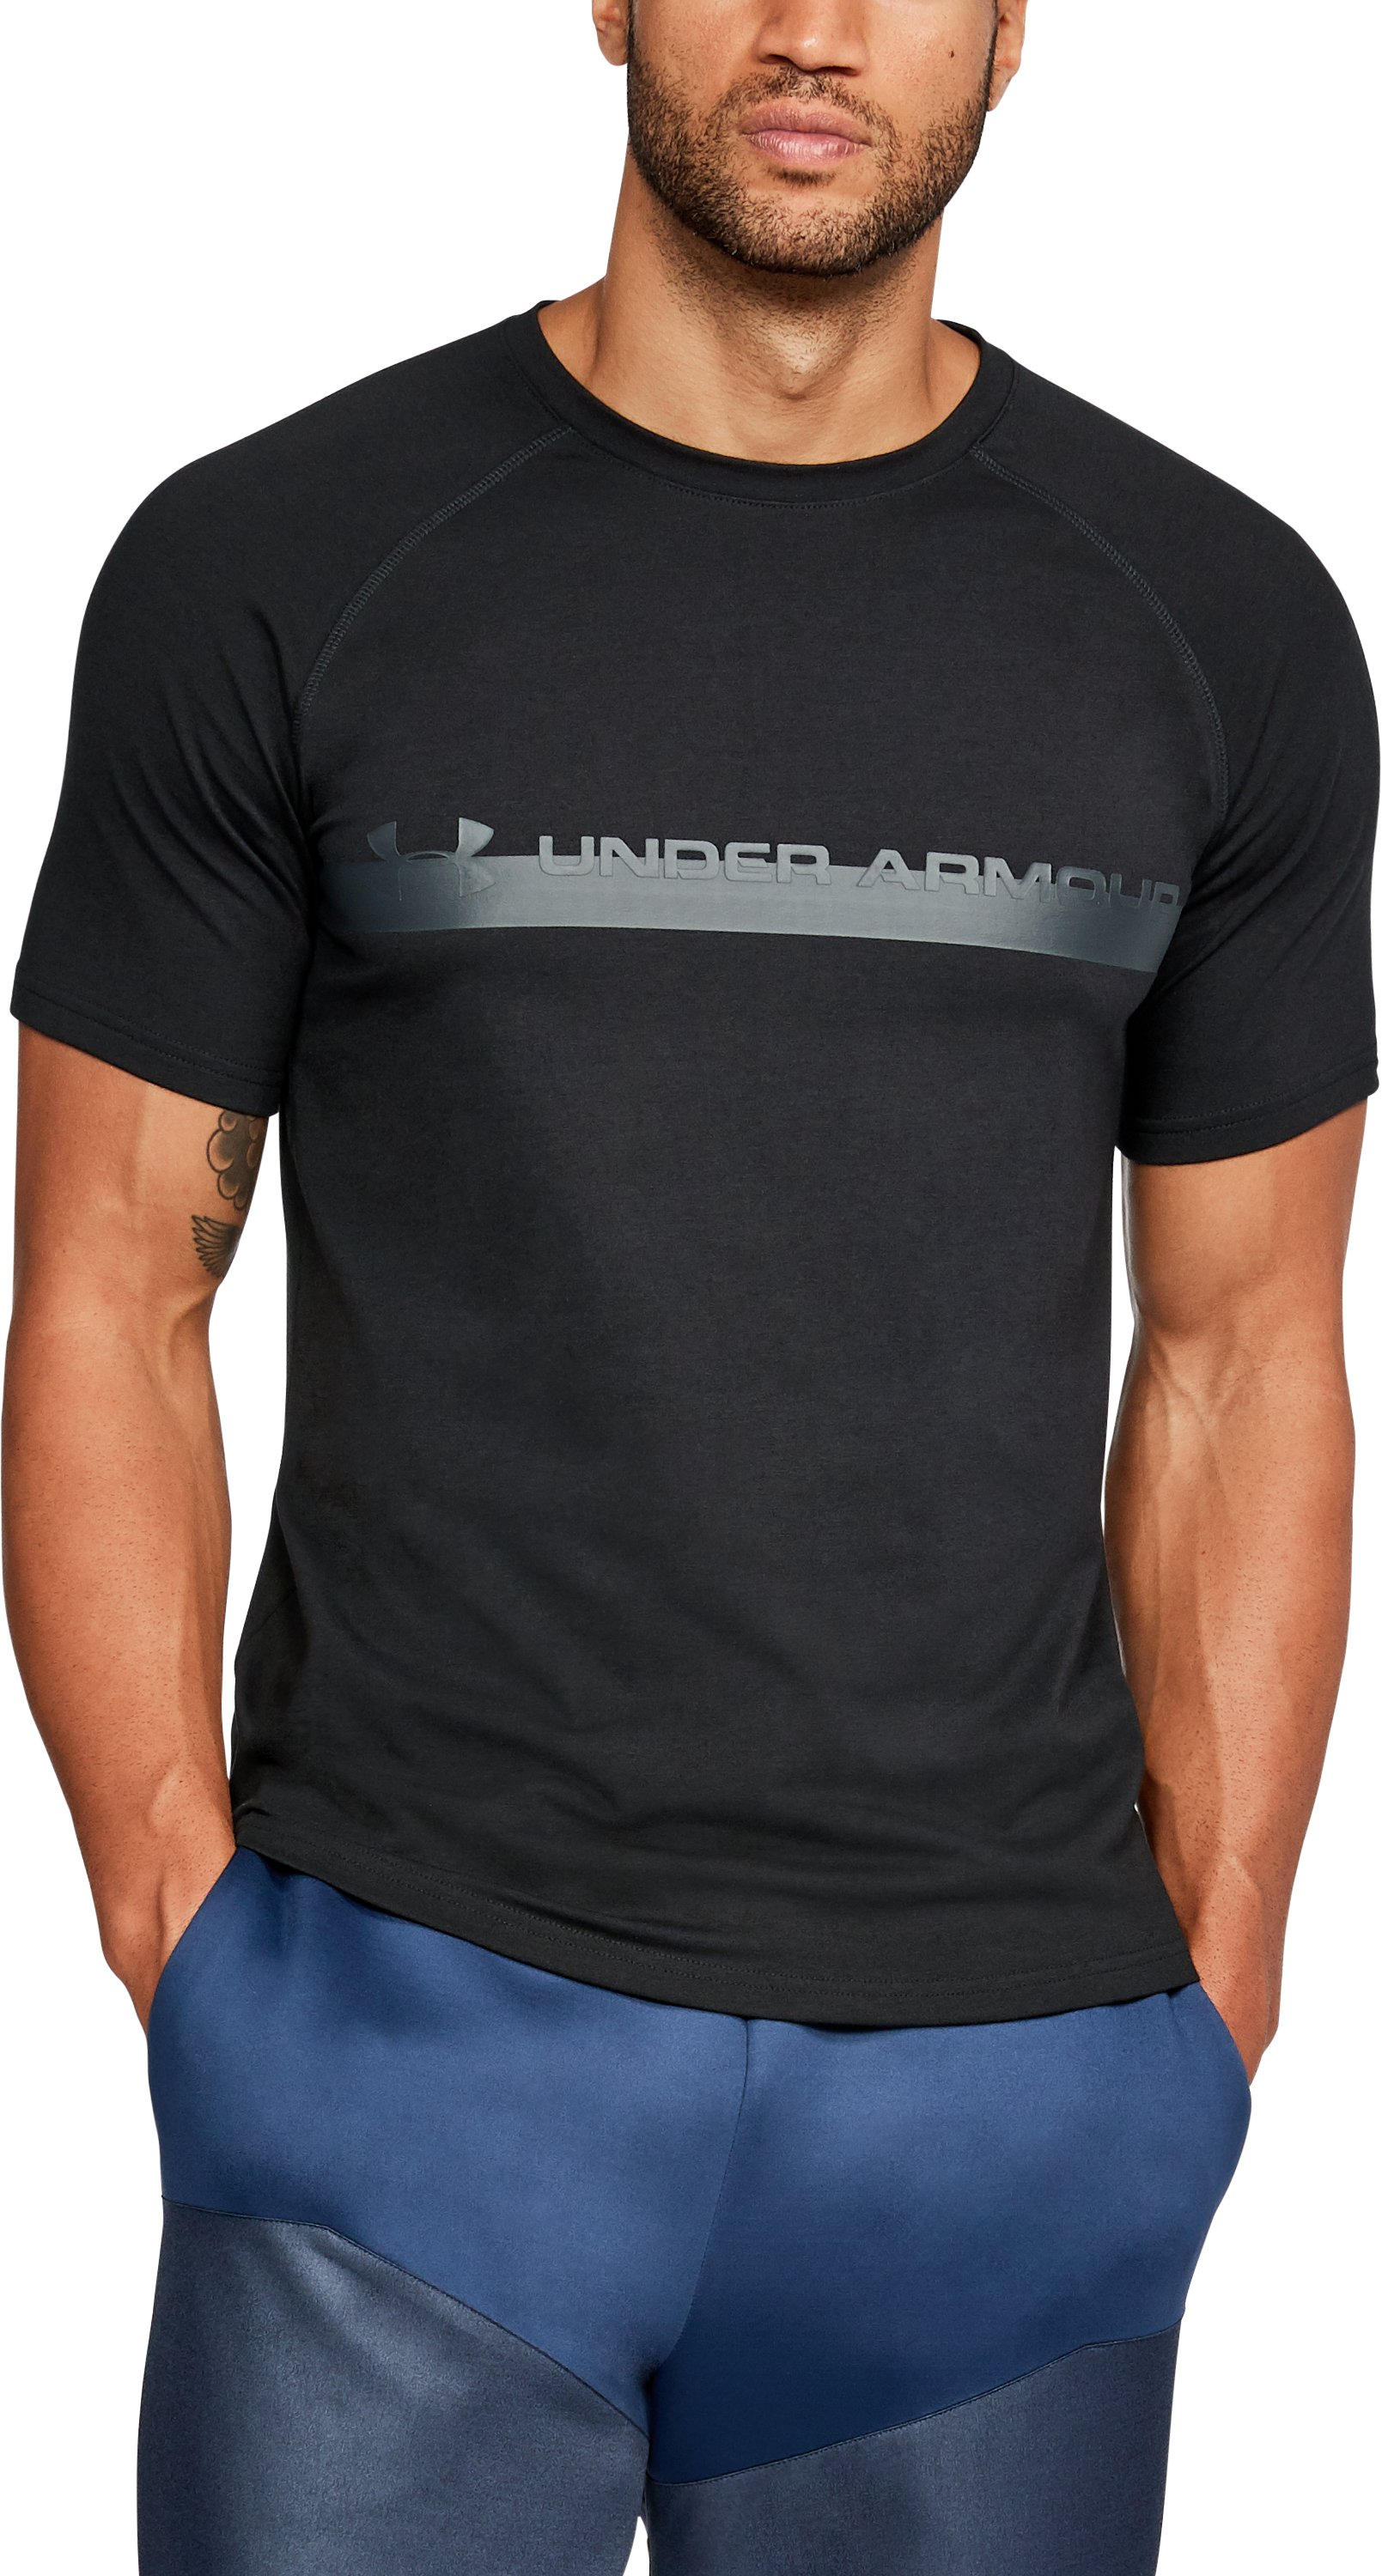 kids graphic t-shirts  Men's UA Unstoppable Graphic T-Shirt It's nice, breathable, and a very high quality shirt....The material is very comfortable, and even after a few washes, it still holds its shape well....This shirt is amazing